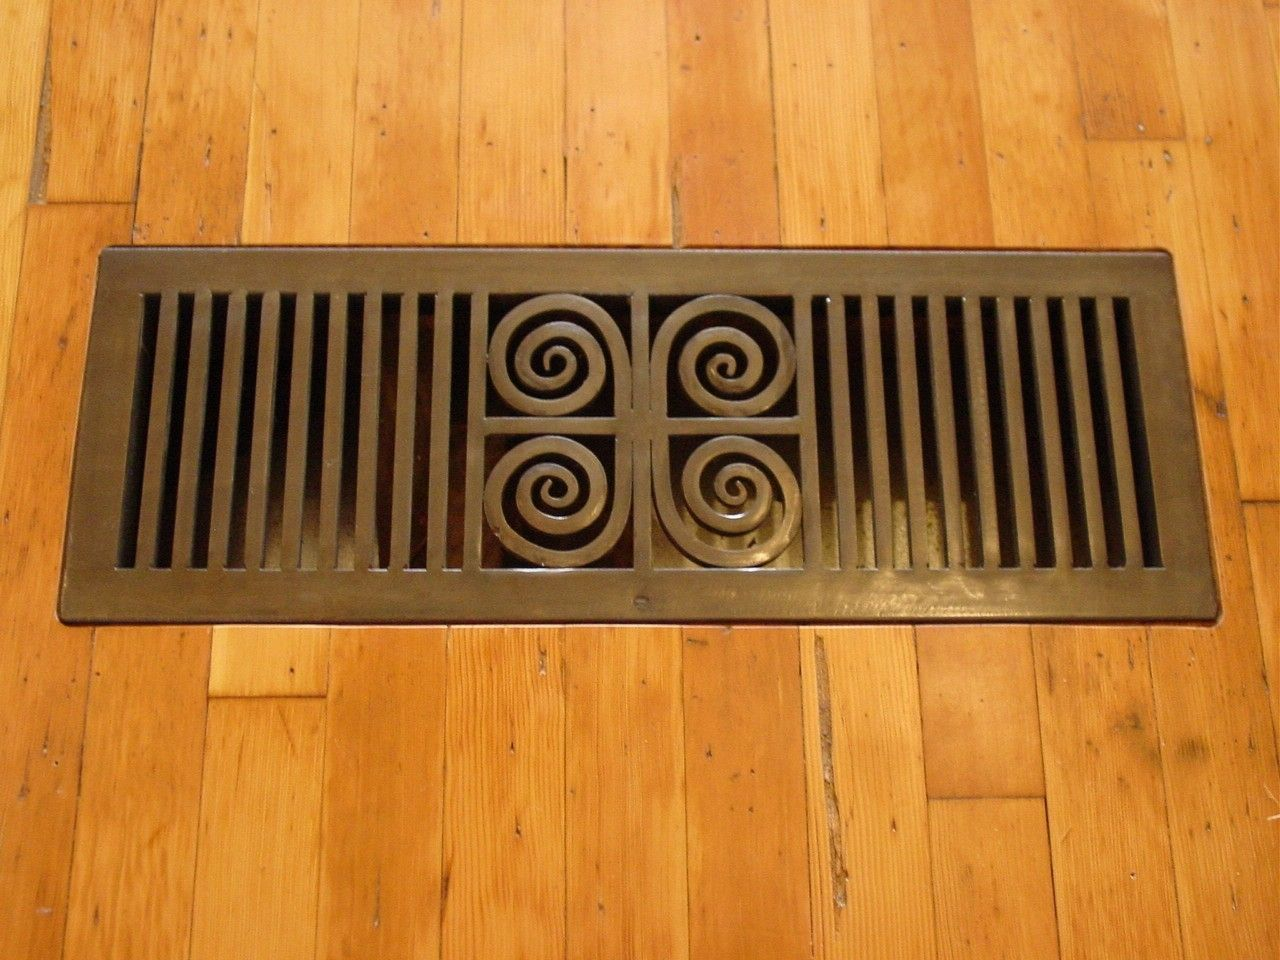 Decorative Grates Registers Custom Made Iron Floor Grate Heat Register By Arrowhead Forge